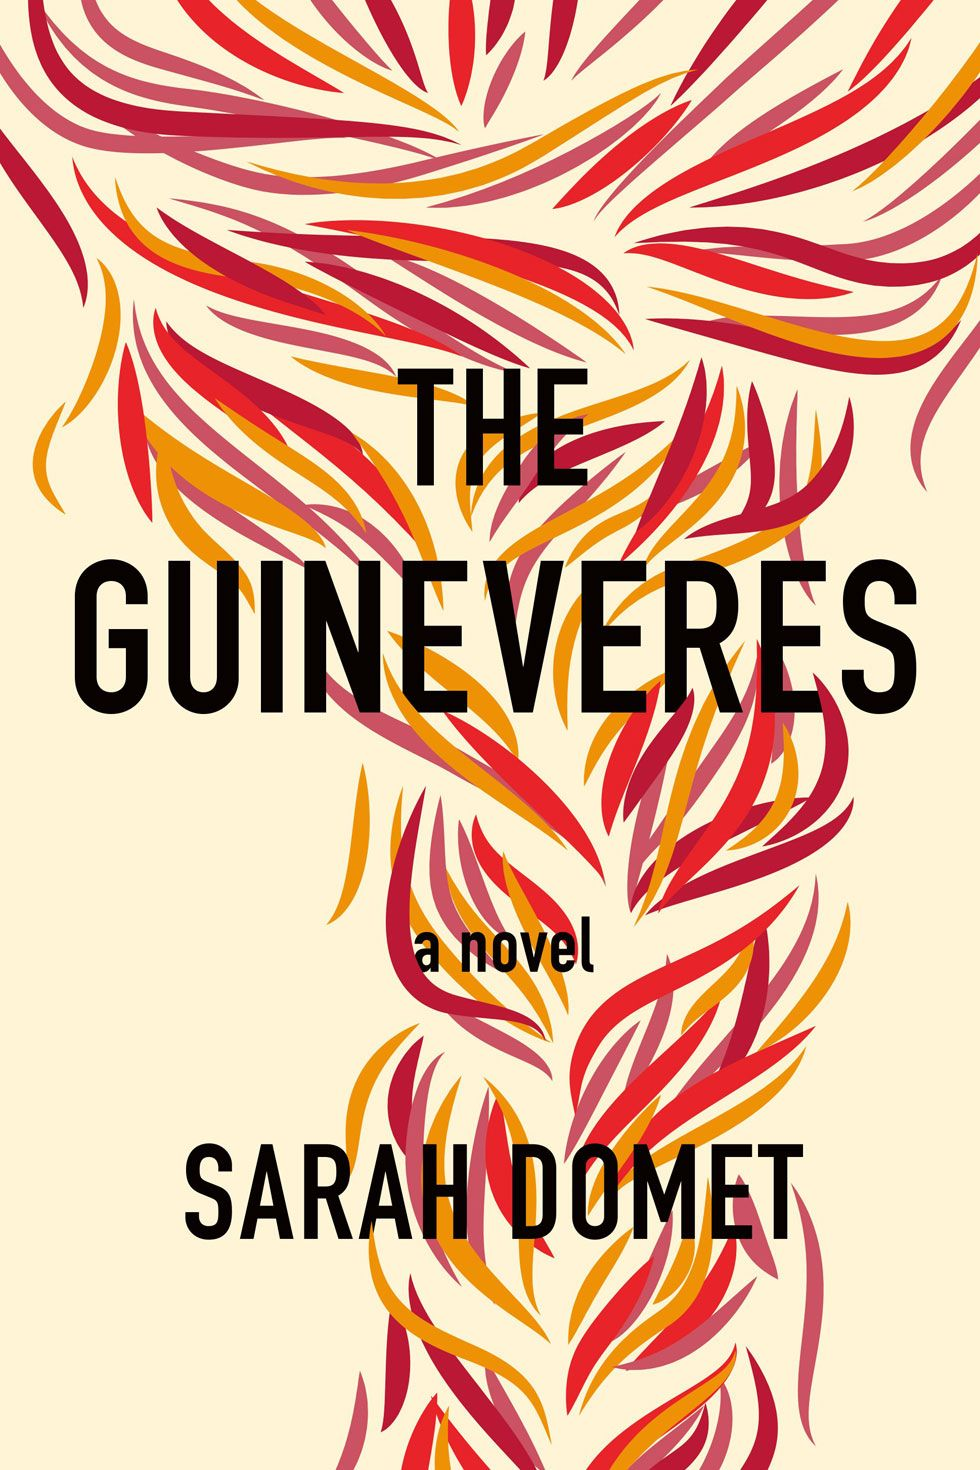 "<p>          Though they all bear the name Guinevere, each of the four heroines of Domet's thoughtful and dazzling debut novel is remarkably distinct from the others. Gwen, Win, Vere, and Ginny are the parentless wards of the Sisters of the Supreme Adoration. When four wounded war soldiers suddenly arrive at the convent, they inspire the girls to seek escape from the nuns, confinement and the youth they are so desperate to leave behind.<span class=""redactor-invisible-space"" data-verified=""redactor"" data-redactor-tag=""span"" data-redactor-class=""redactor-invisible-space""></span></p><p><em data-redactor-tag=""em"" data-verified=""redactor"">The Guineveres </em><span class=""redactor-invisible-space"" data-verified=""redactor"" data-redactor-tag=""span"" data-redactor-class=""redactor-invisible-space"">by Sarah Domet</span><span class=""redactor-invisible-space"" data-verified=""redactor"" data-redactor-tag=""span"" data-redactor-class=""redactor-invisible-space"">, $22, <a href=""https://www.amazon.com/Guineveres-Novel-Sarah-Domet/dp/1250086612"" target=""_blank"">amazon.com</a> on October 4.</span><br></p><p><span class=""redactor-invisible-space"" data-verified=""redactor"" data-redactor-tag=""span"" data-redactor-class=""redactor-invisible-space""><span class=""redactor-invisible-space"" data-verified=""redactor"" data-redactor-tag=""span"" data-redactor-class=""redactor-invisible-space""></span></span></p>"